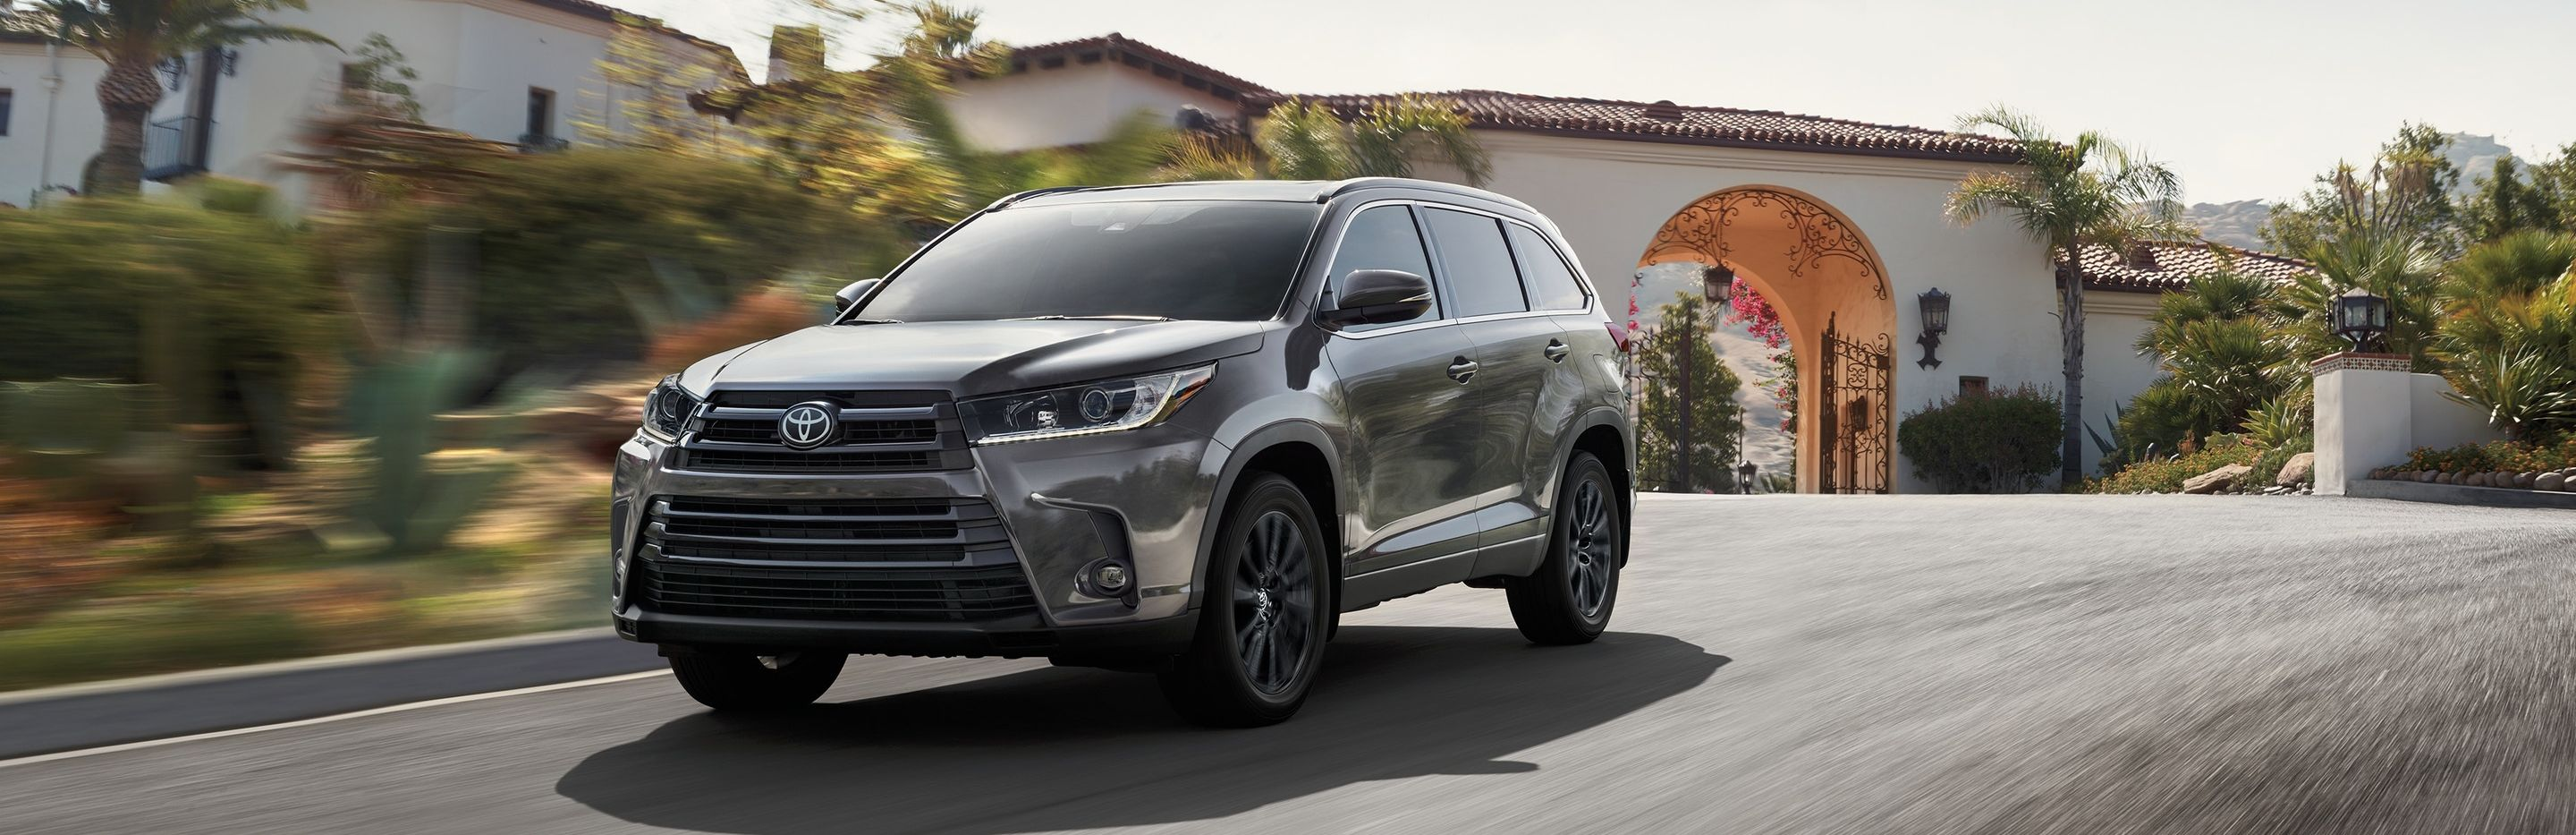 2019 Toyota Highlander Financing near West Des Moines, IA